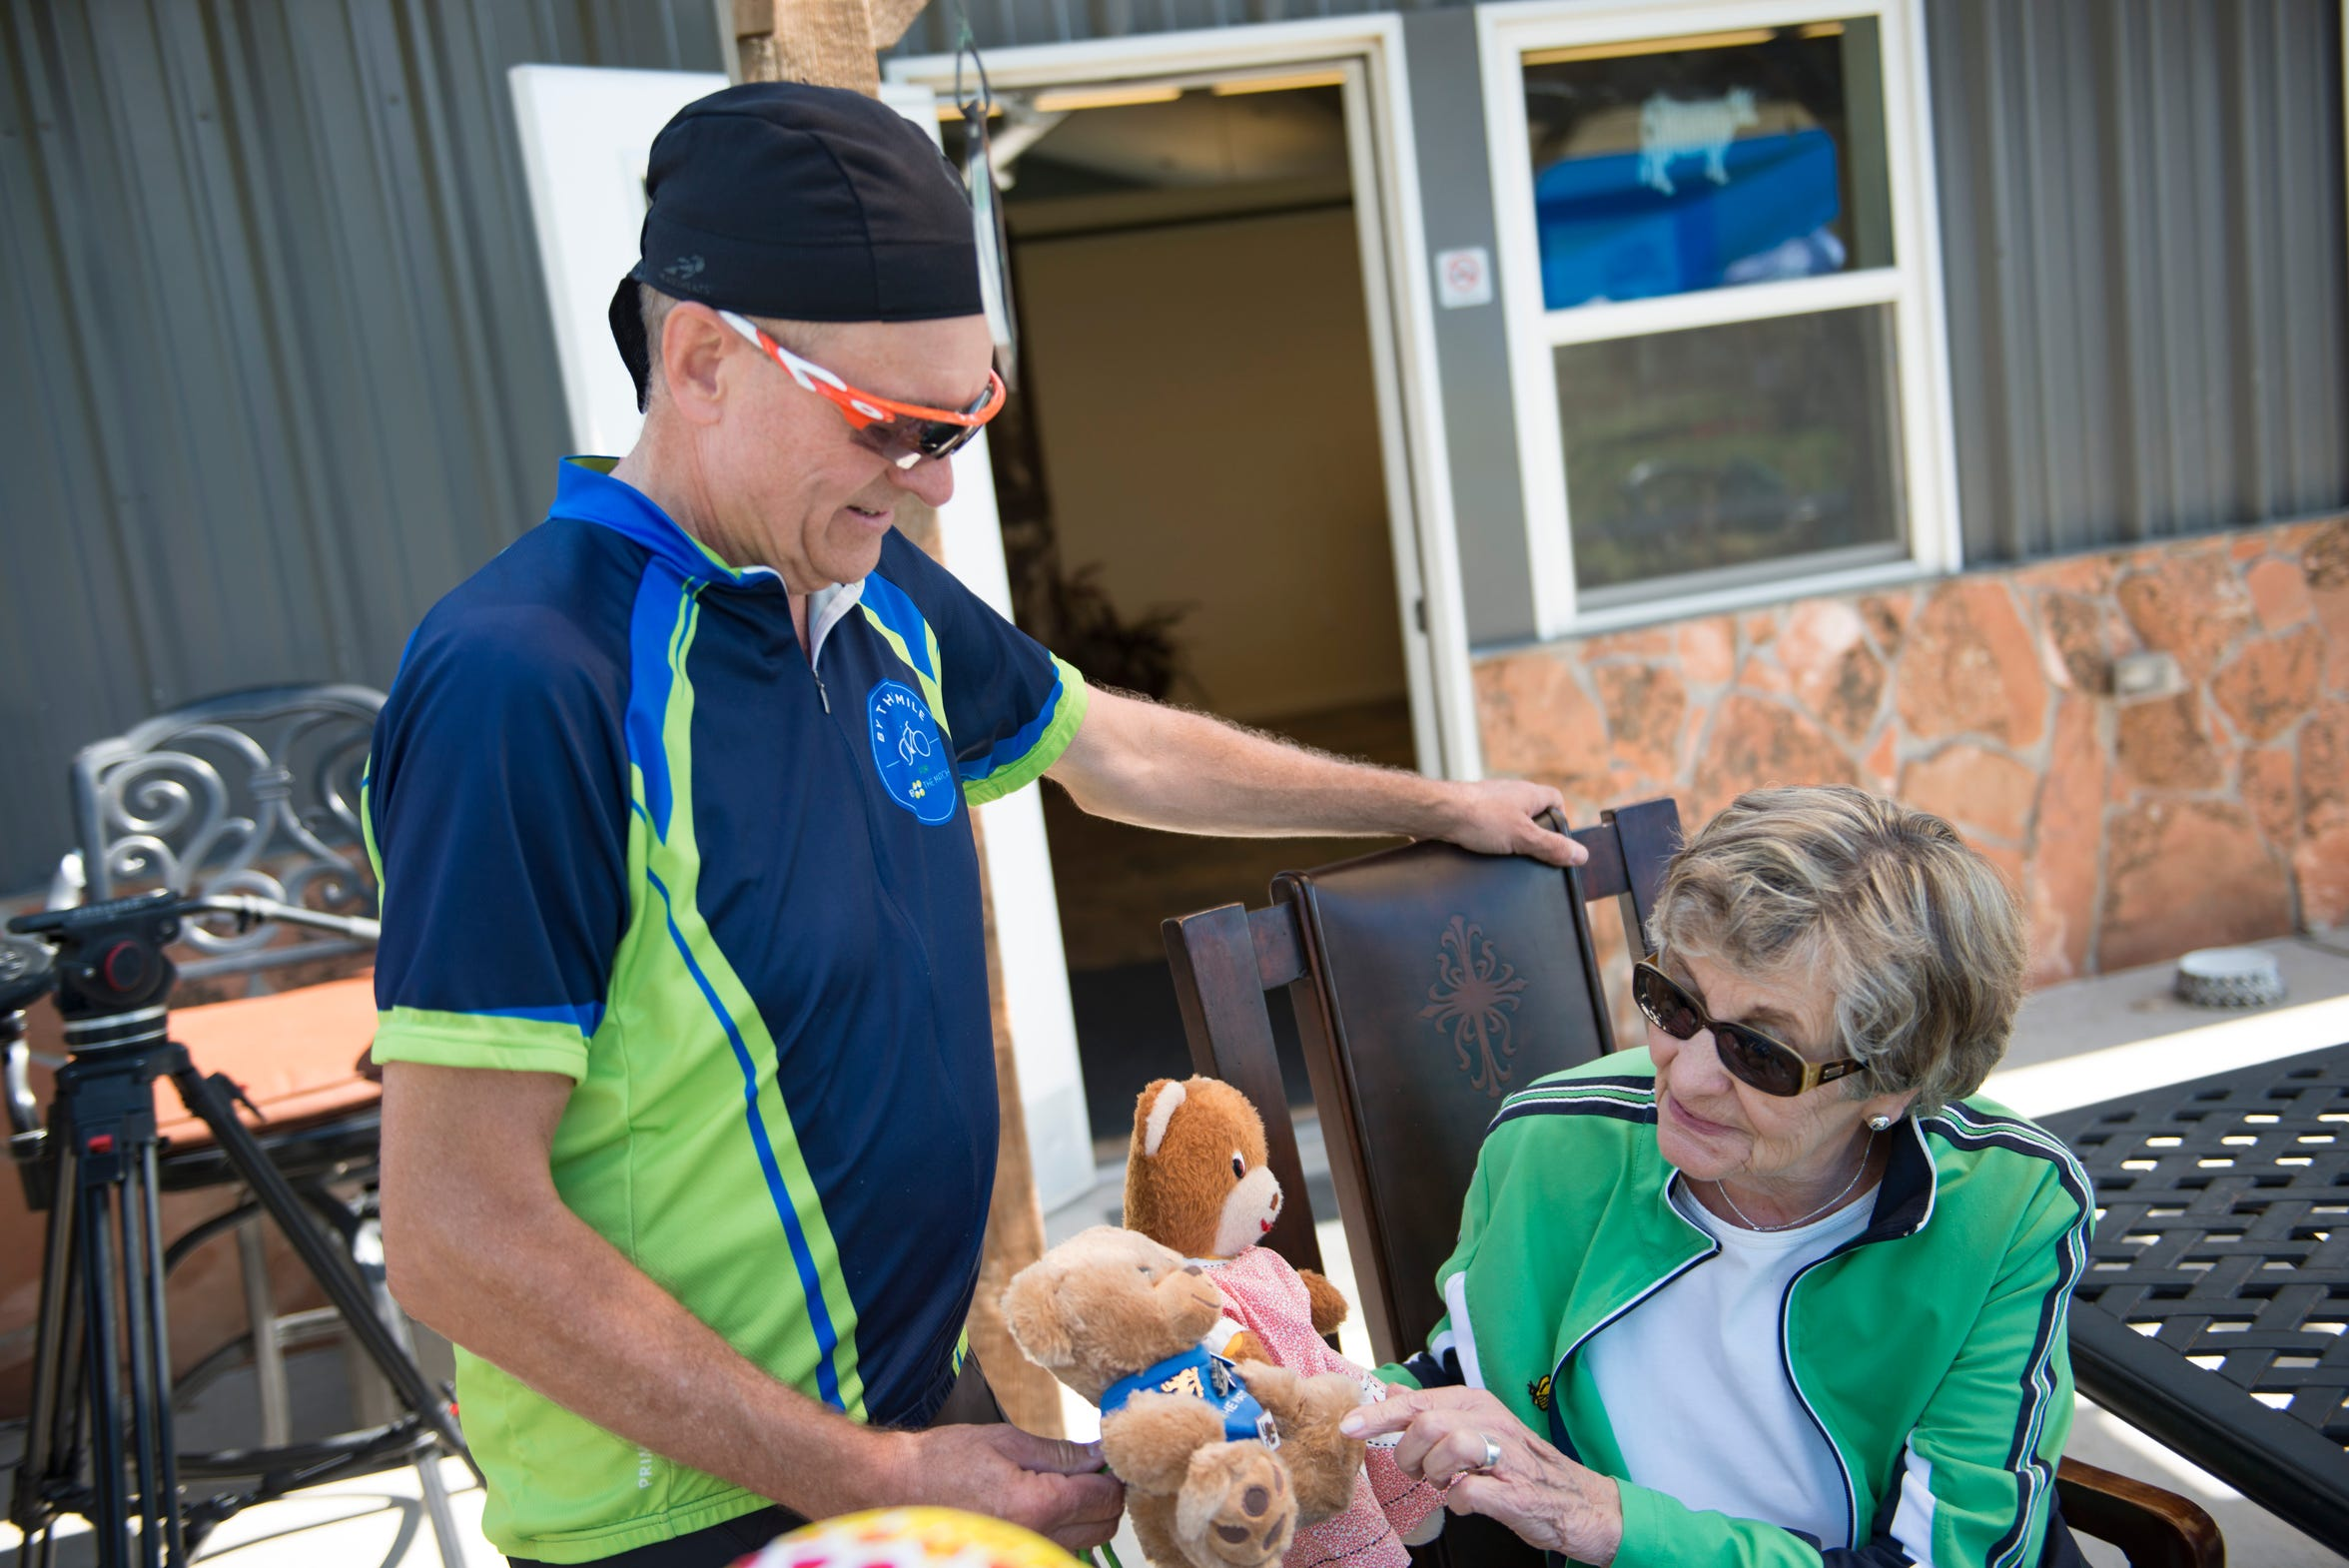 Bob Falkenberg shows Sherry Graves the bear he carries with him on his bicycle inspired by her daughter, Laura, during a Be The Match event hosted by Morning Fresh Dairy on Saturday, September 8, 2018. Laura Graves was 10 years old when she became the first bone marrow transplant recipient to fight her Leukemia.